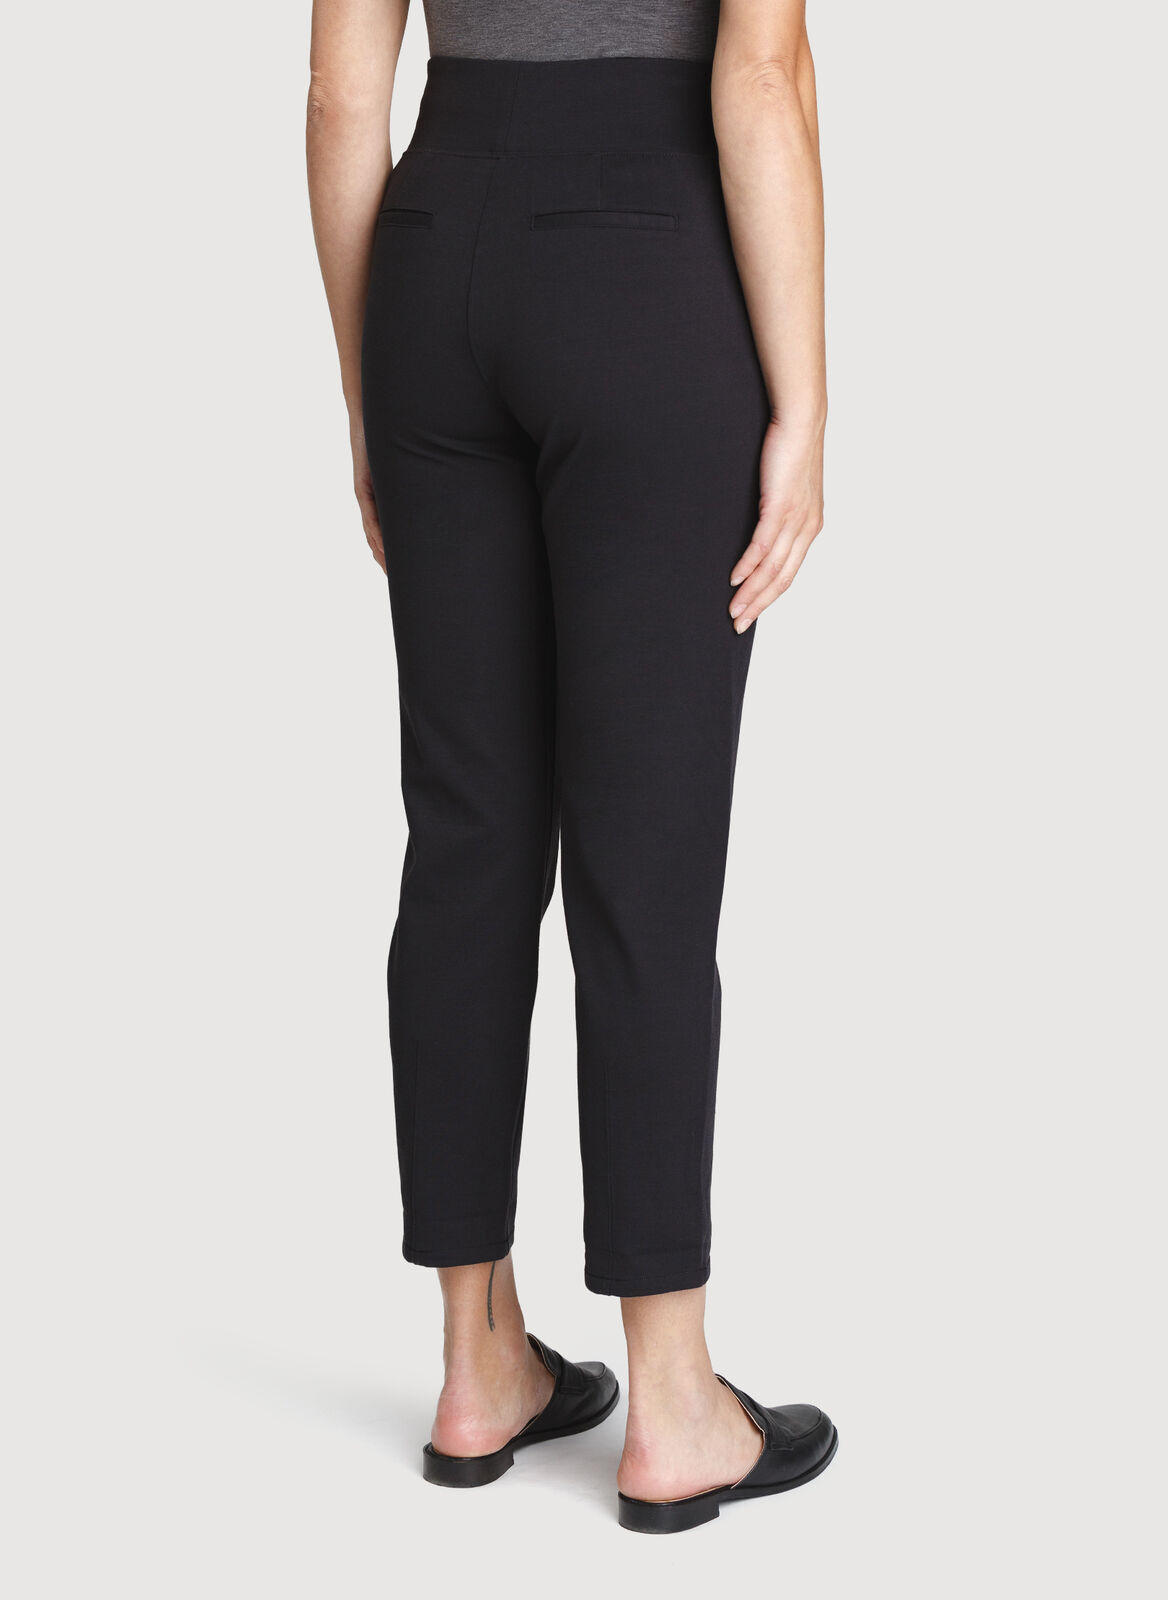 kit and ace mulberry pant review